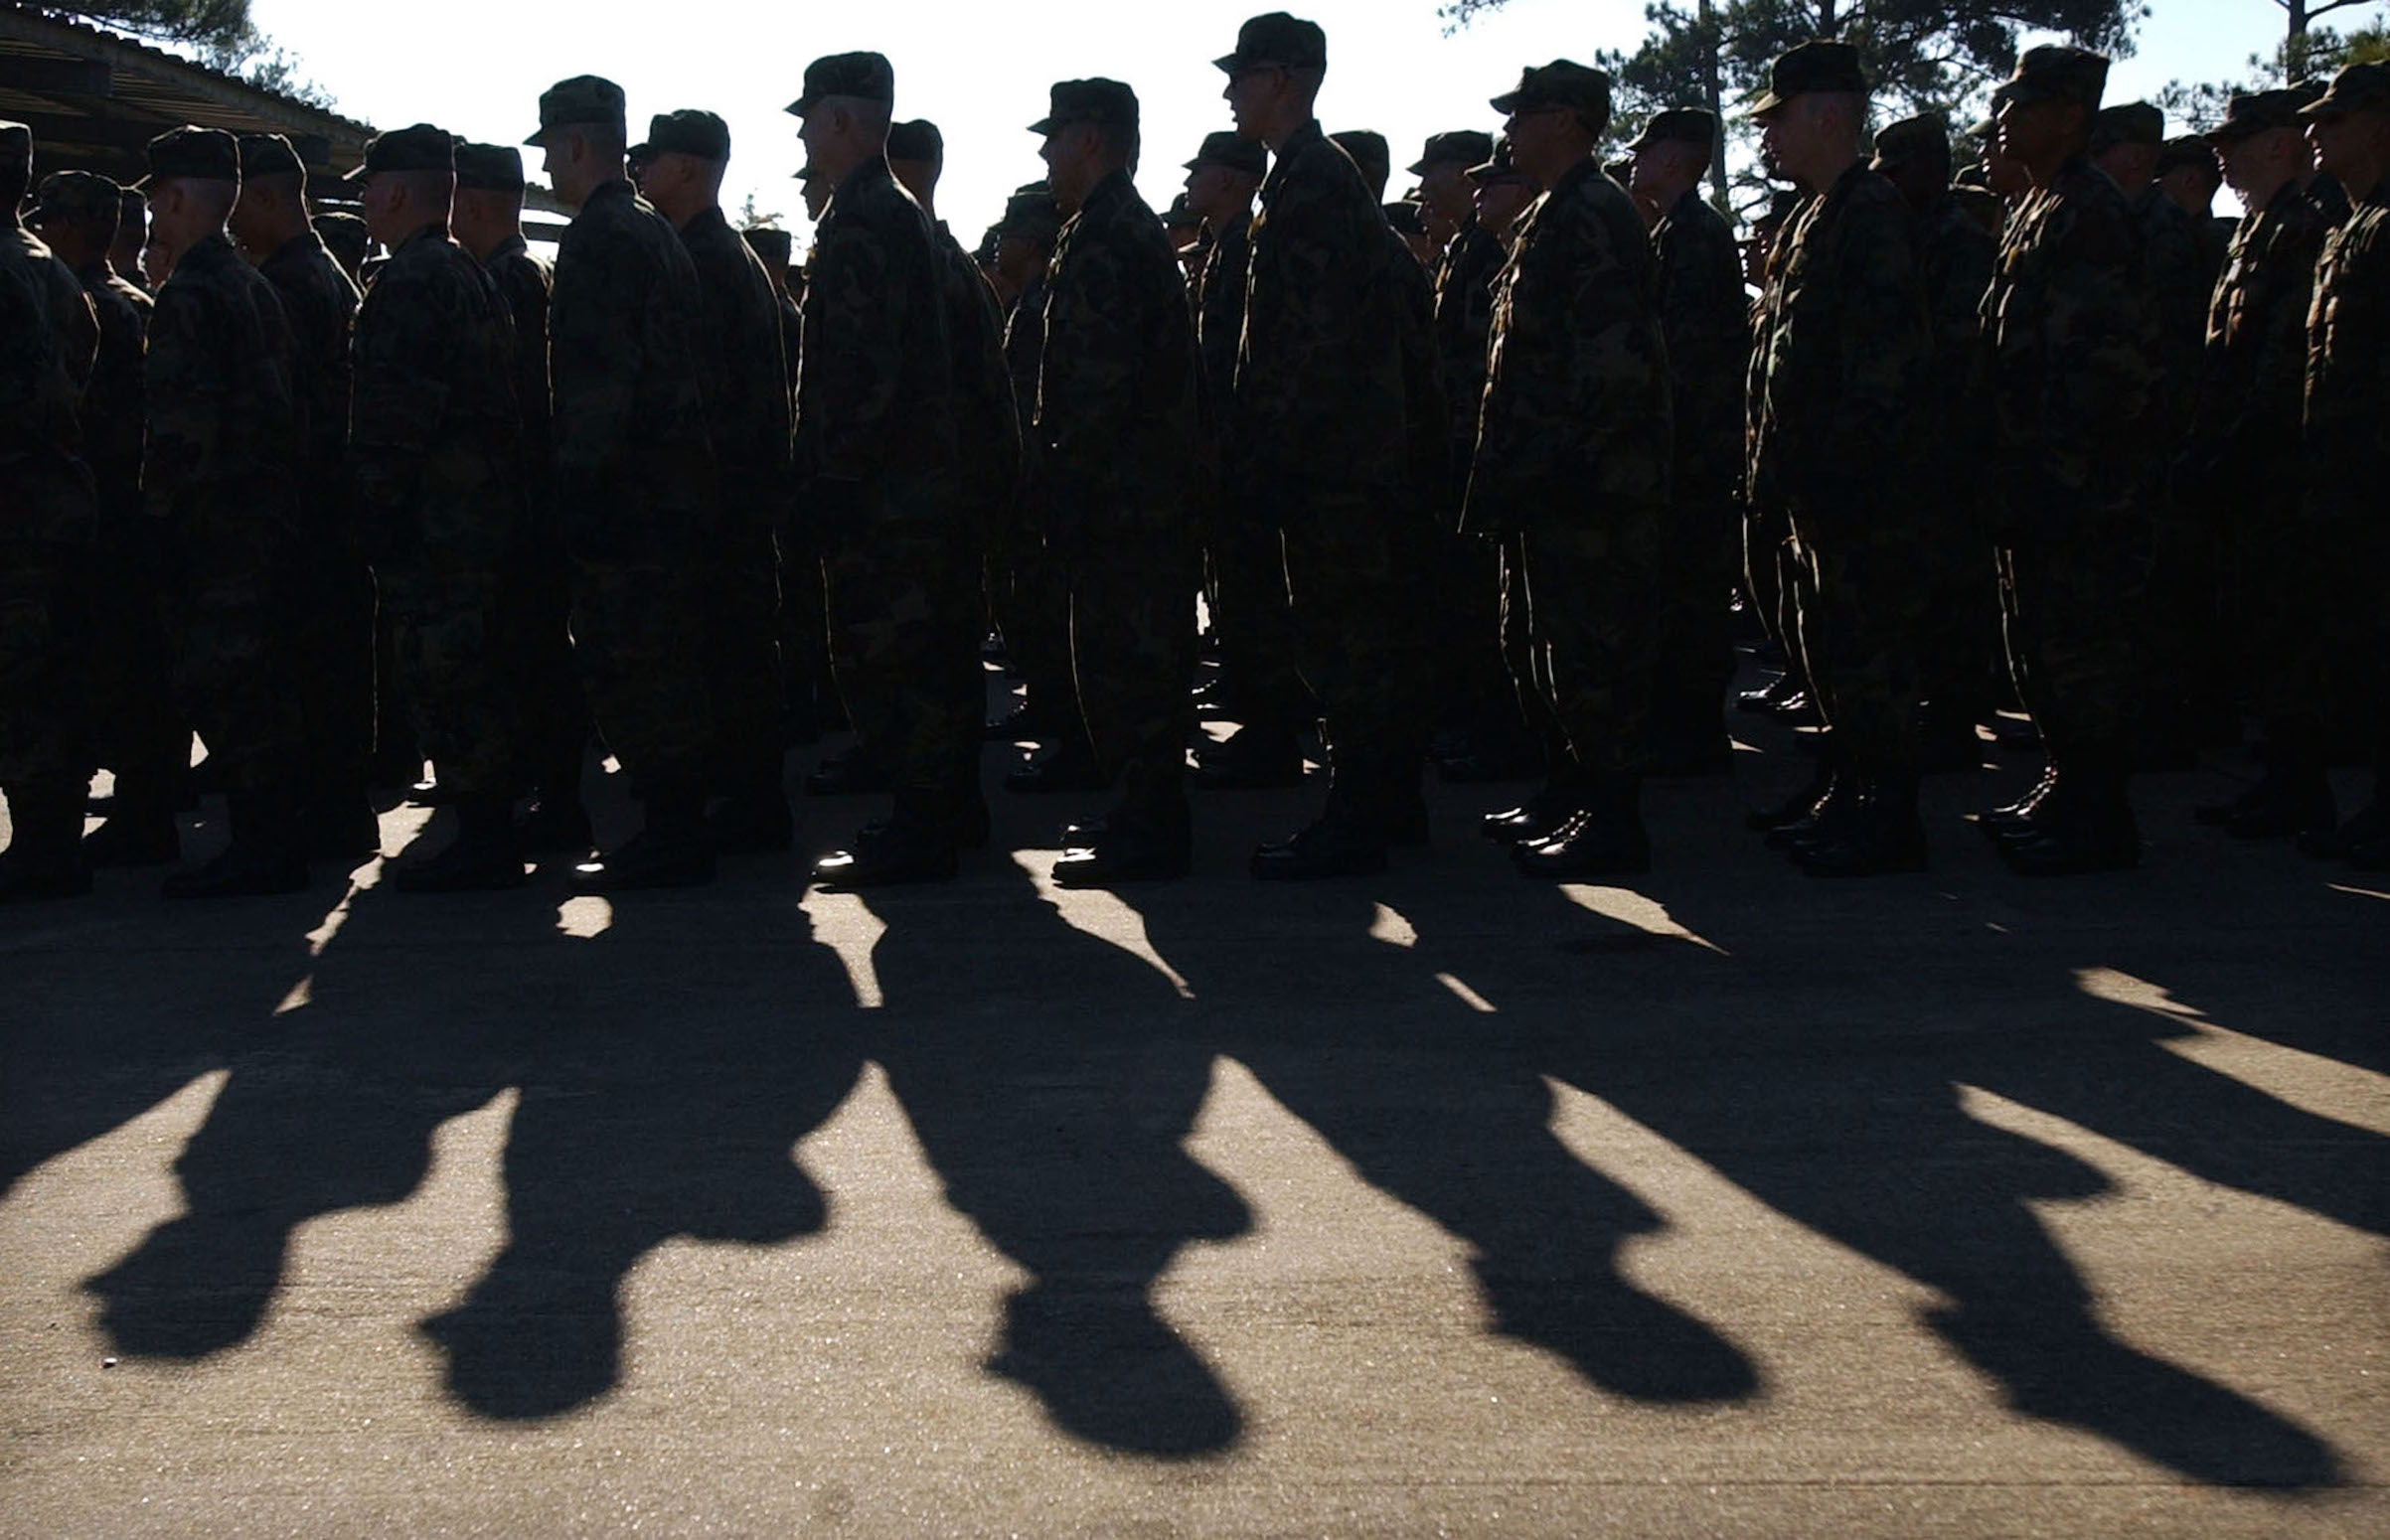 U.S. Soldiers with Delta Company line up to take part in morning team development exercises Nov. 7, 2002 in Fort Benning, Ga. Over 24,000 soldiers every year go through U.S. Army basic training at Fort Benning.